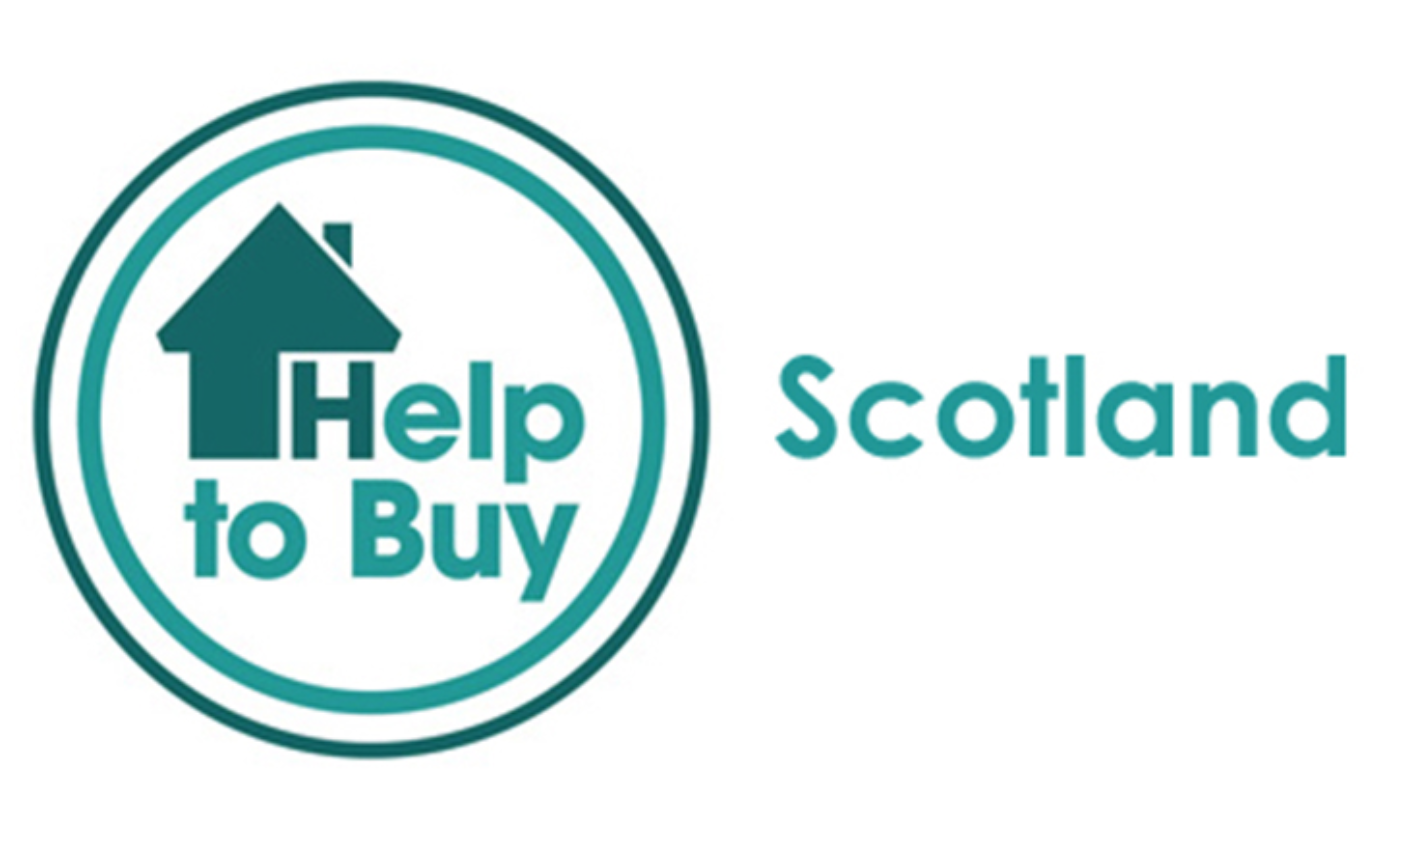 Help to Buy Scheme Extended to 2022